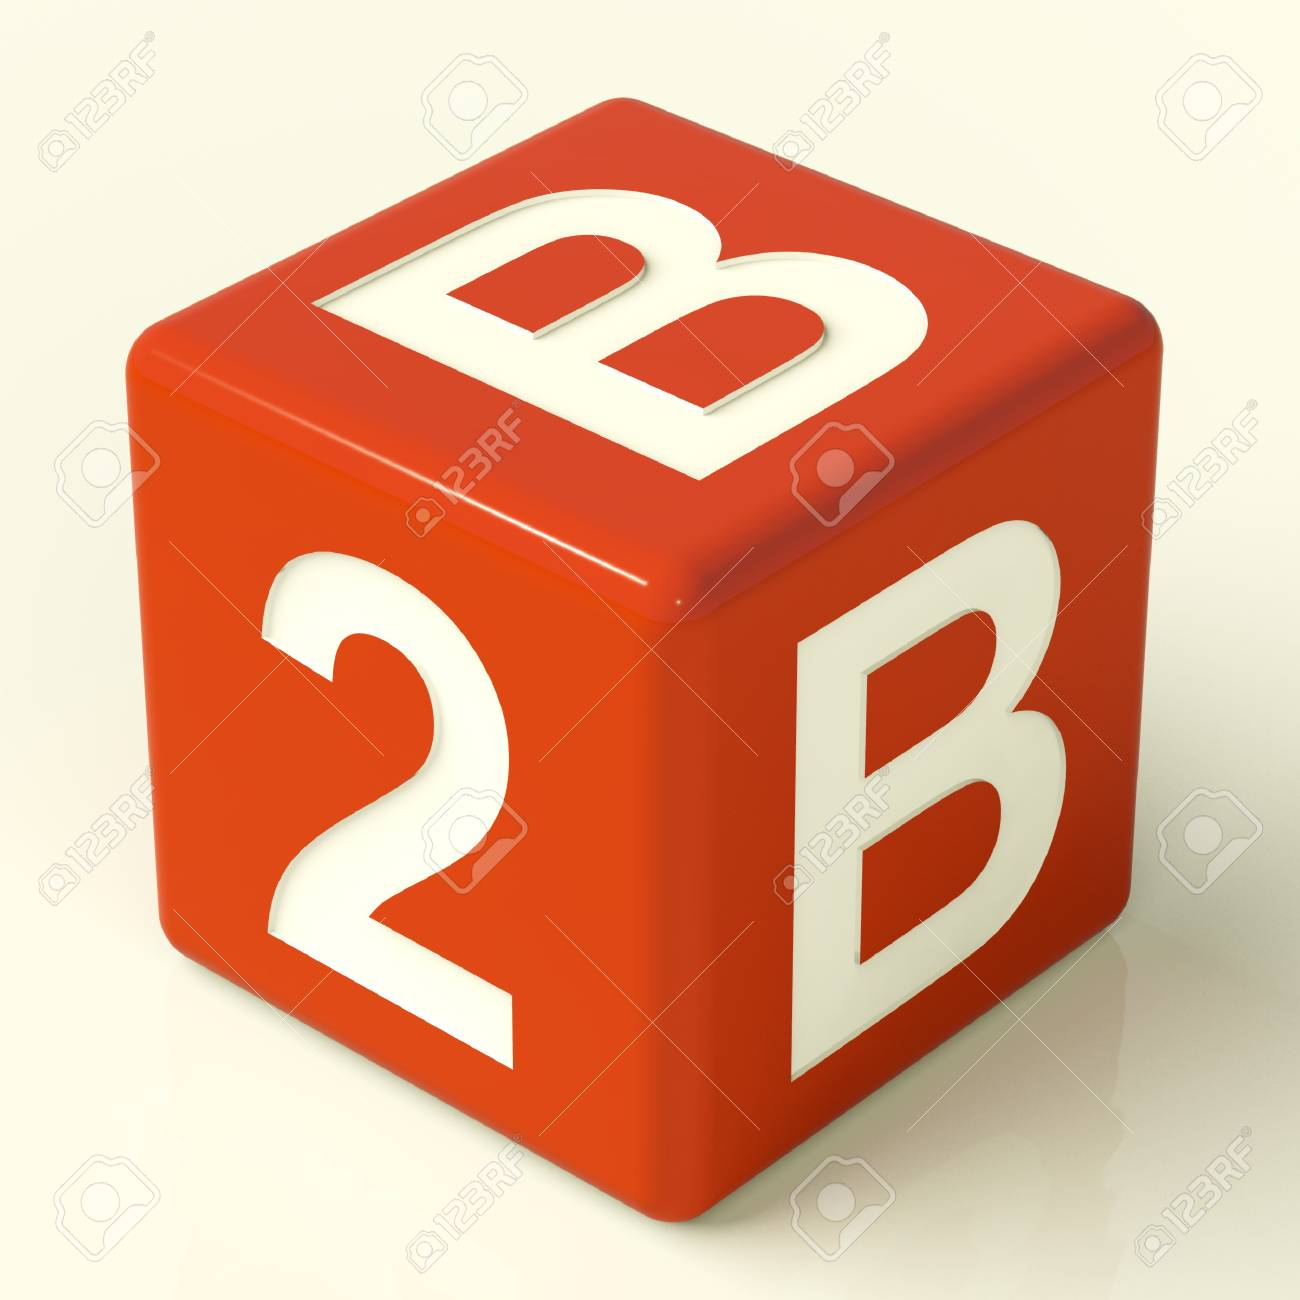 B2b Red Dice As A Sign Of Business And Partnership Stock Photo - 11725370